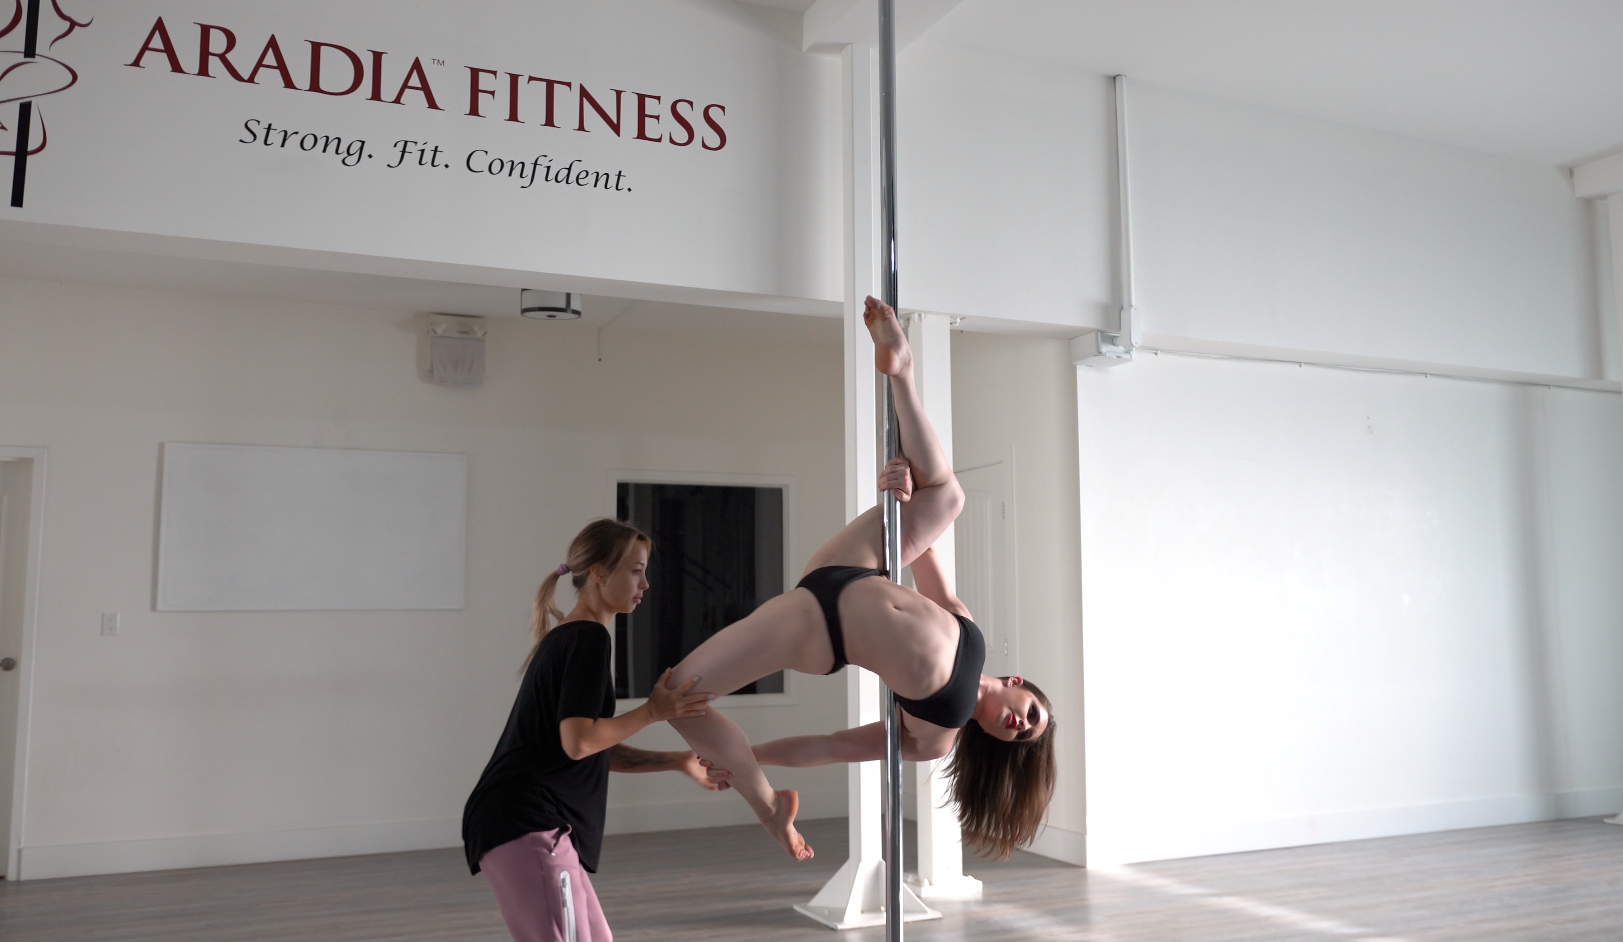 Kira Noire assisting Clare Burton during the Aradia Fitness Calgary Feature Video Shoot